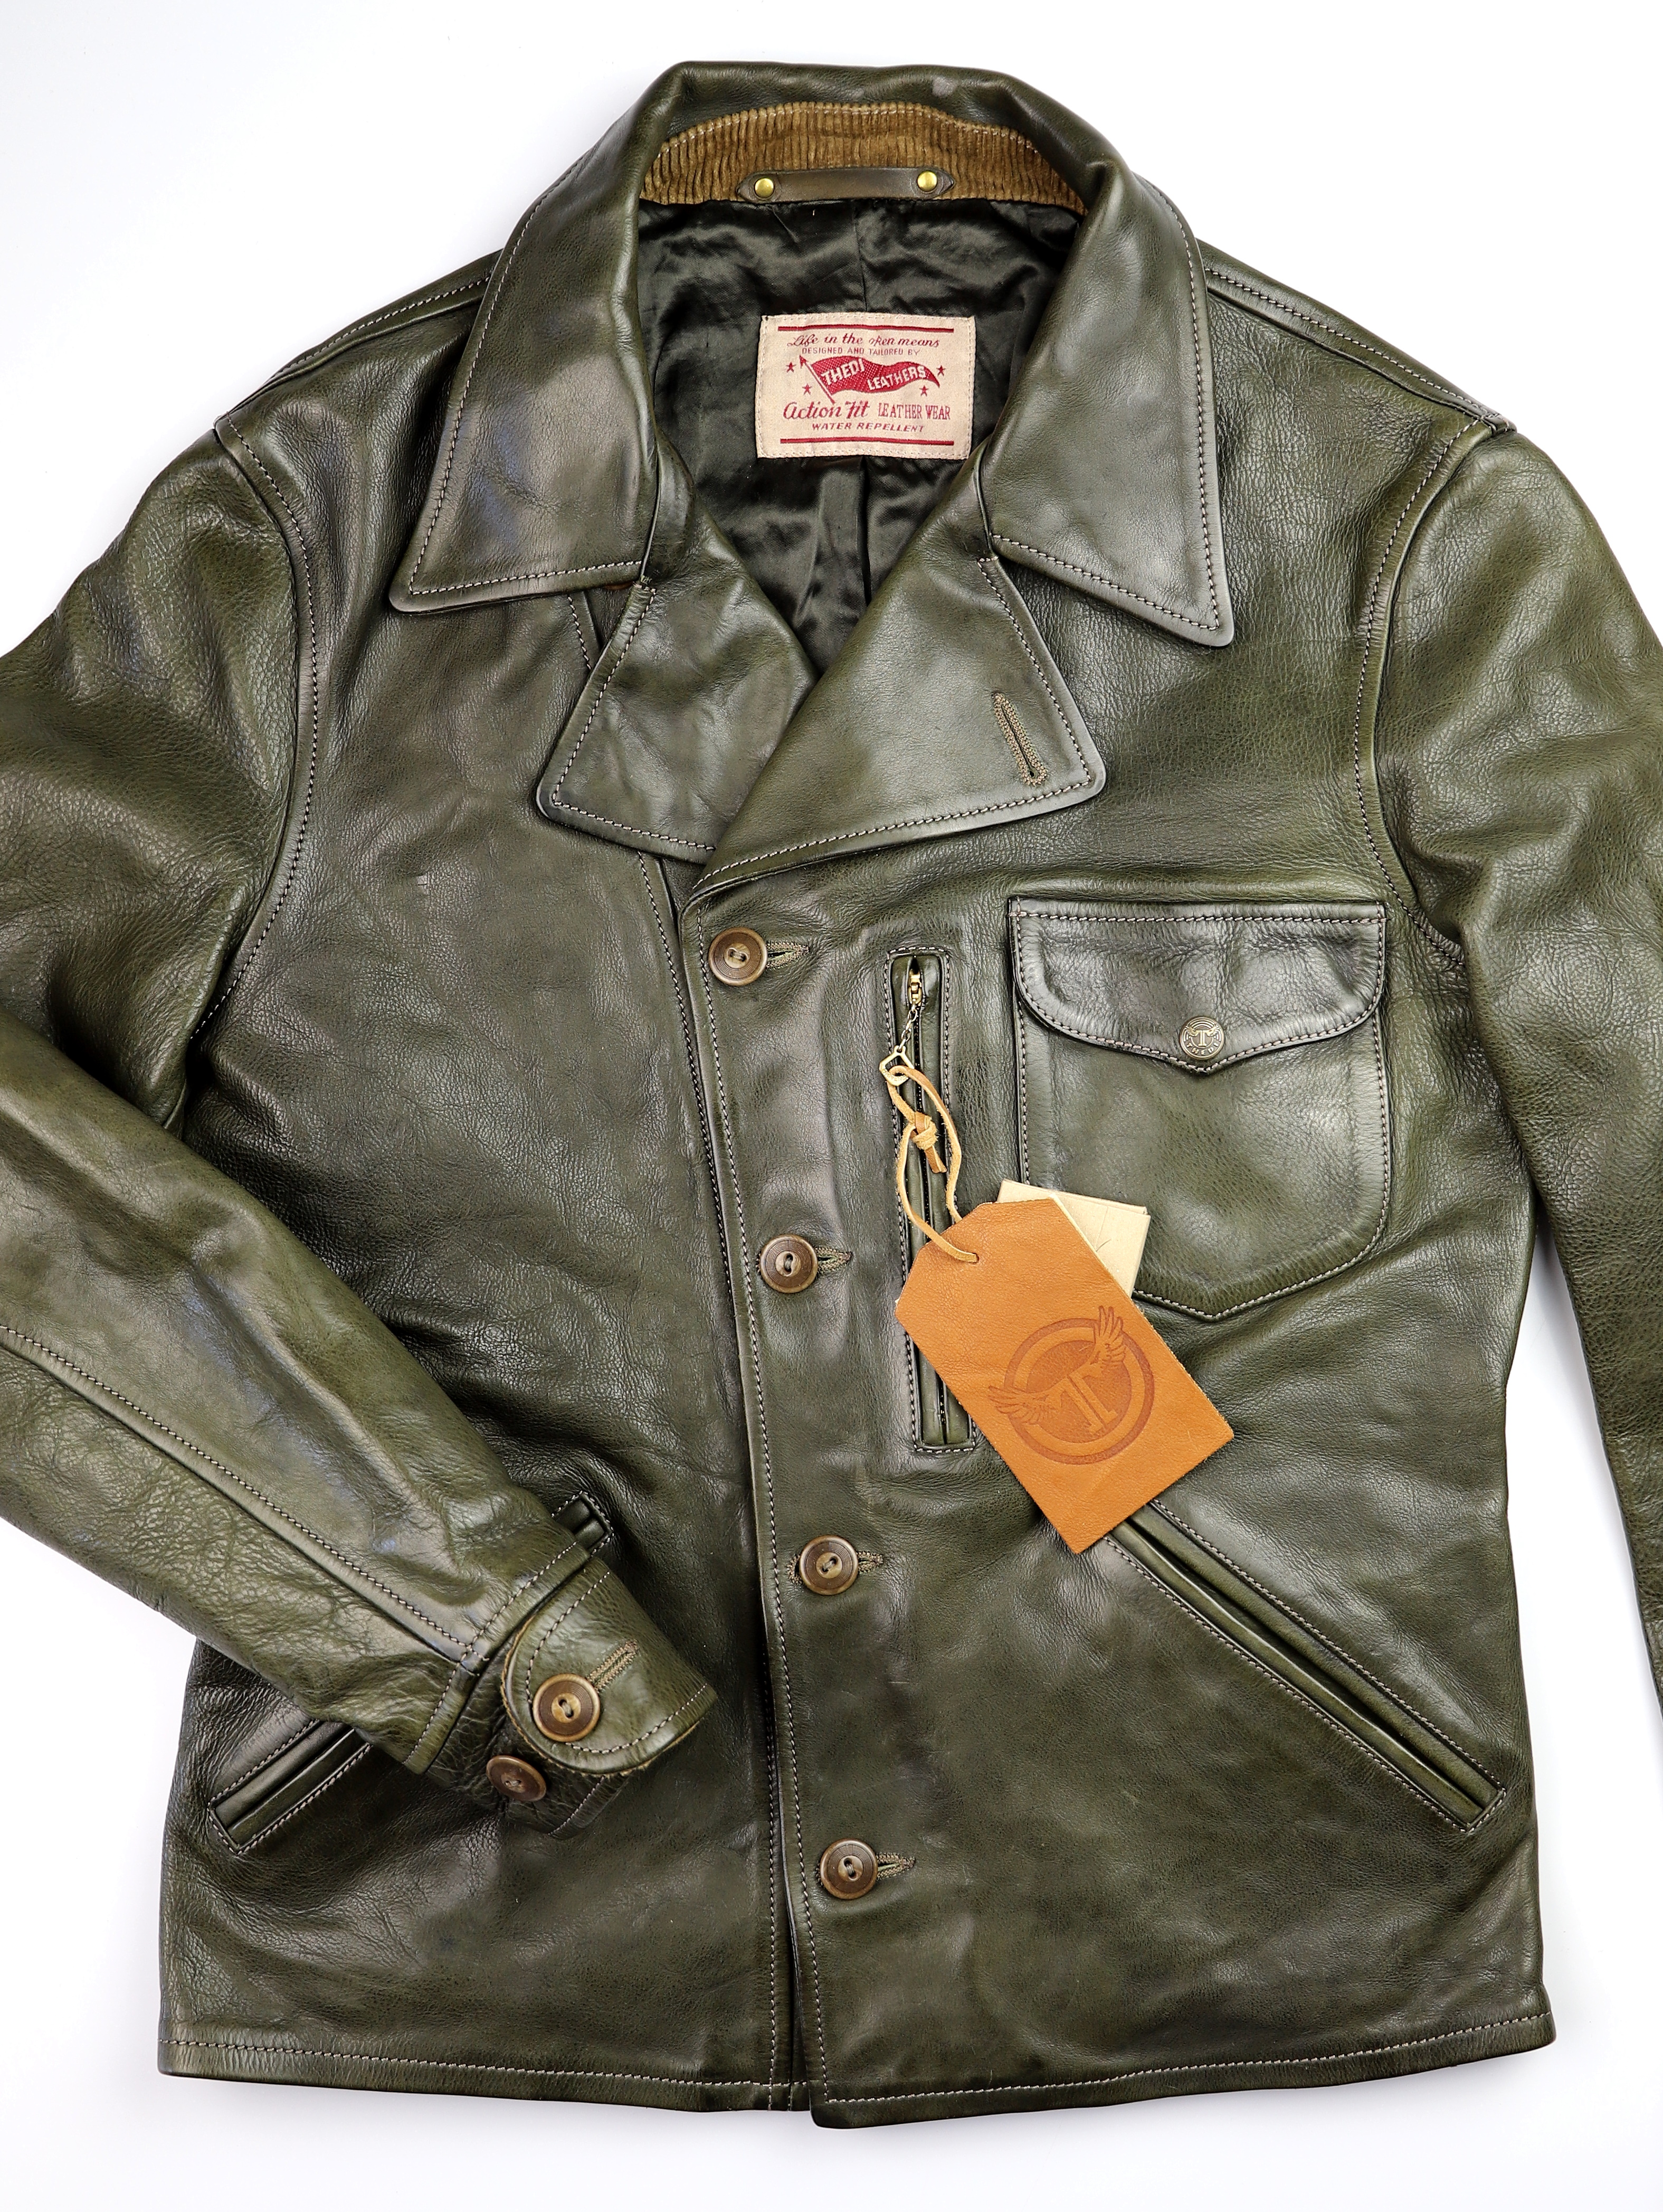 Thedi Hektor Green Cowhide front.jpg